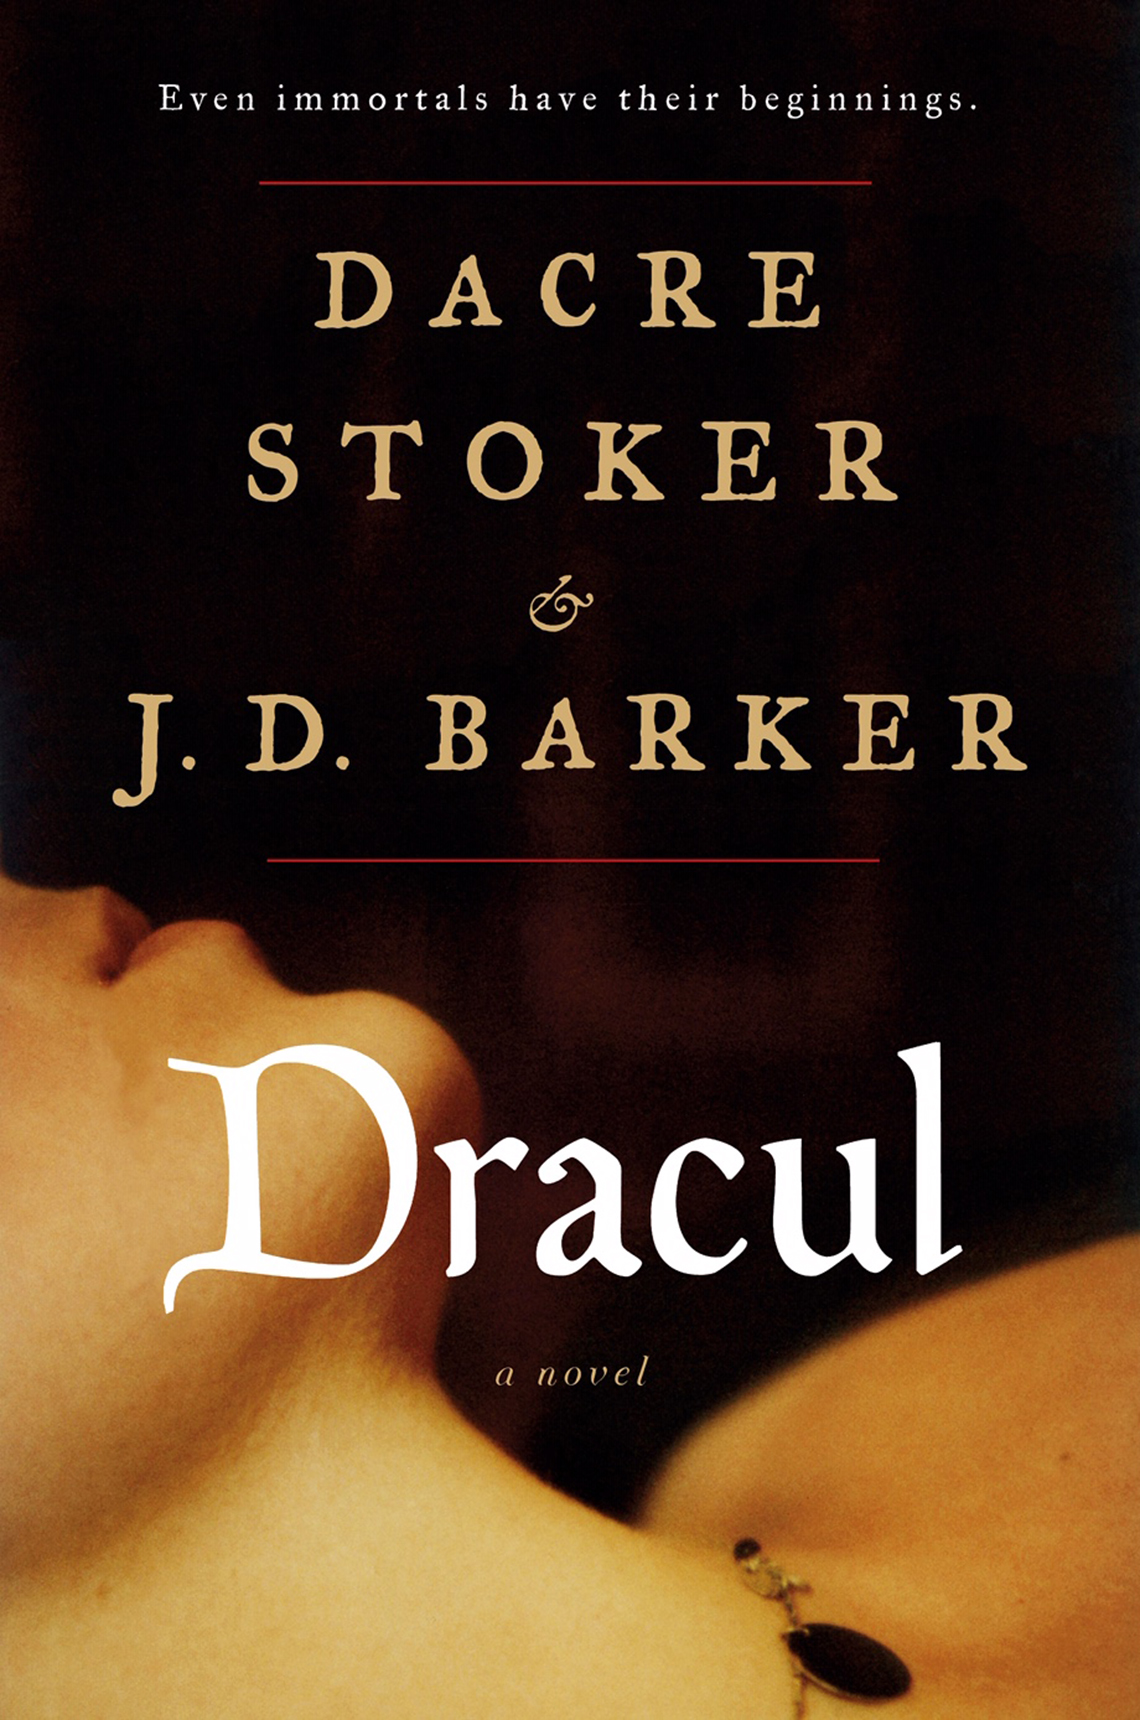 Book cover reads, Dacre Stoker and J.D. Barker,  Dracul a novel